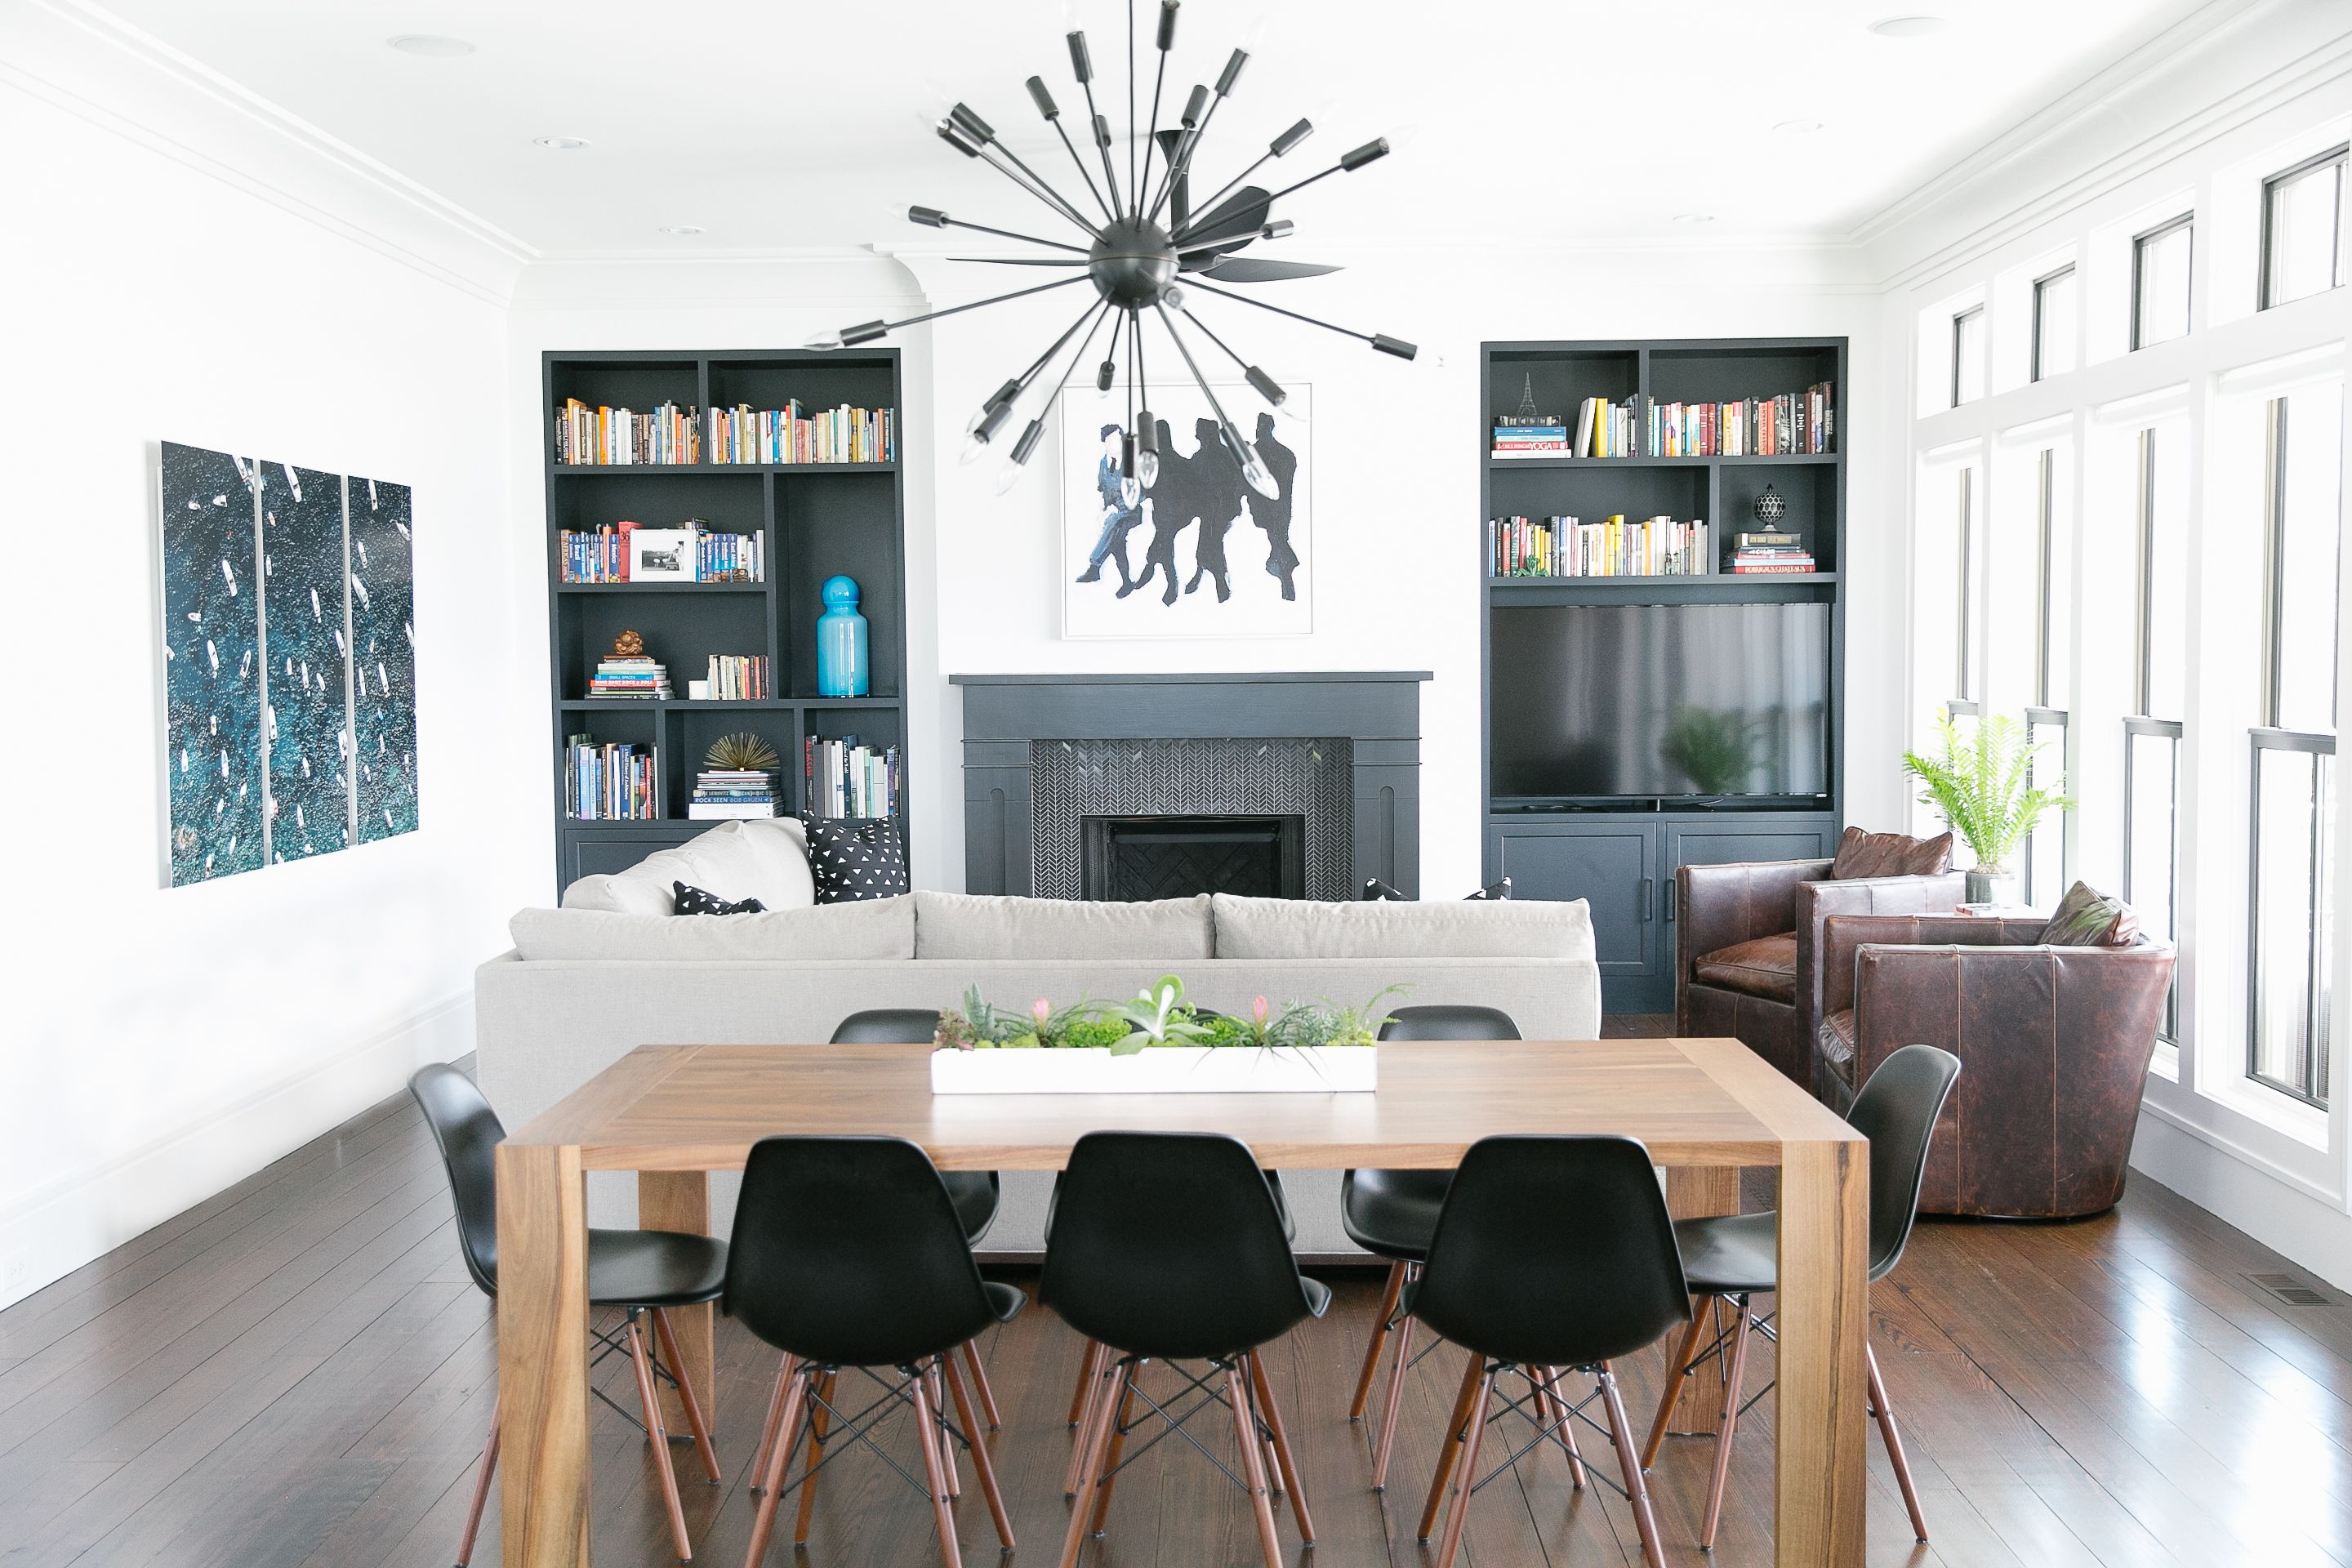 charleston home design%0A Charleston SC  Melissa Lenox  an interior designer and longtime California  girl  brings a dose of West Coast style to her new home on the banks of the